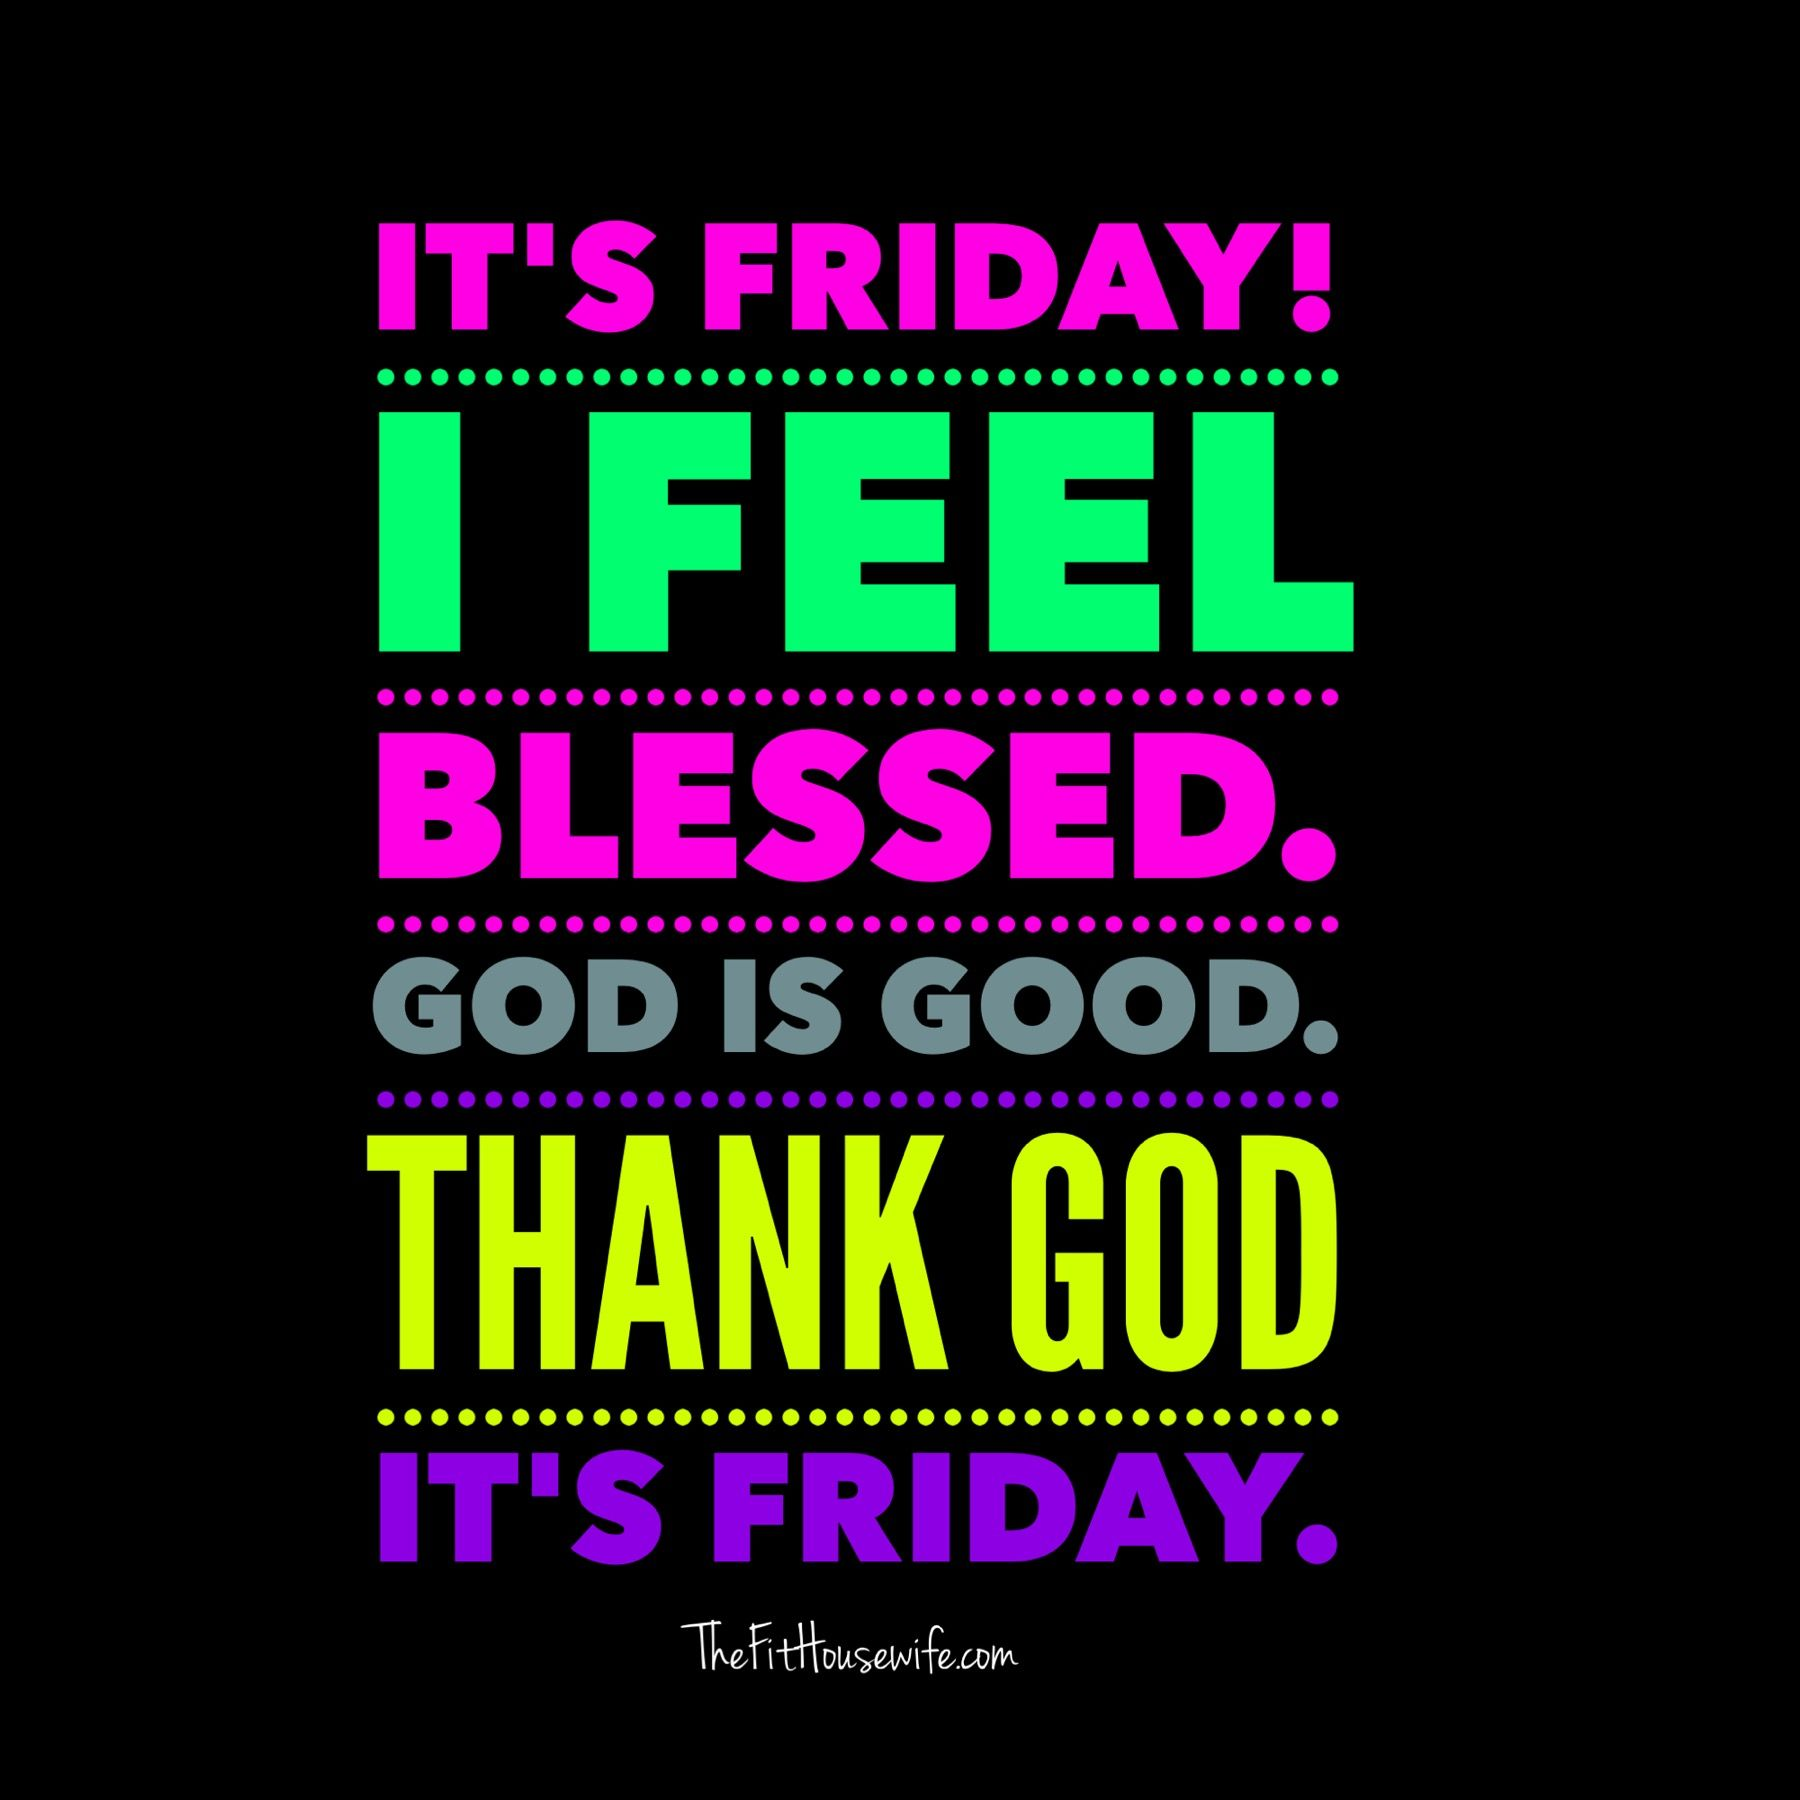 Thank God Its Friday Friday Thank God God Friday